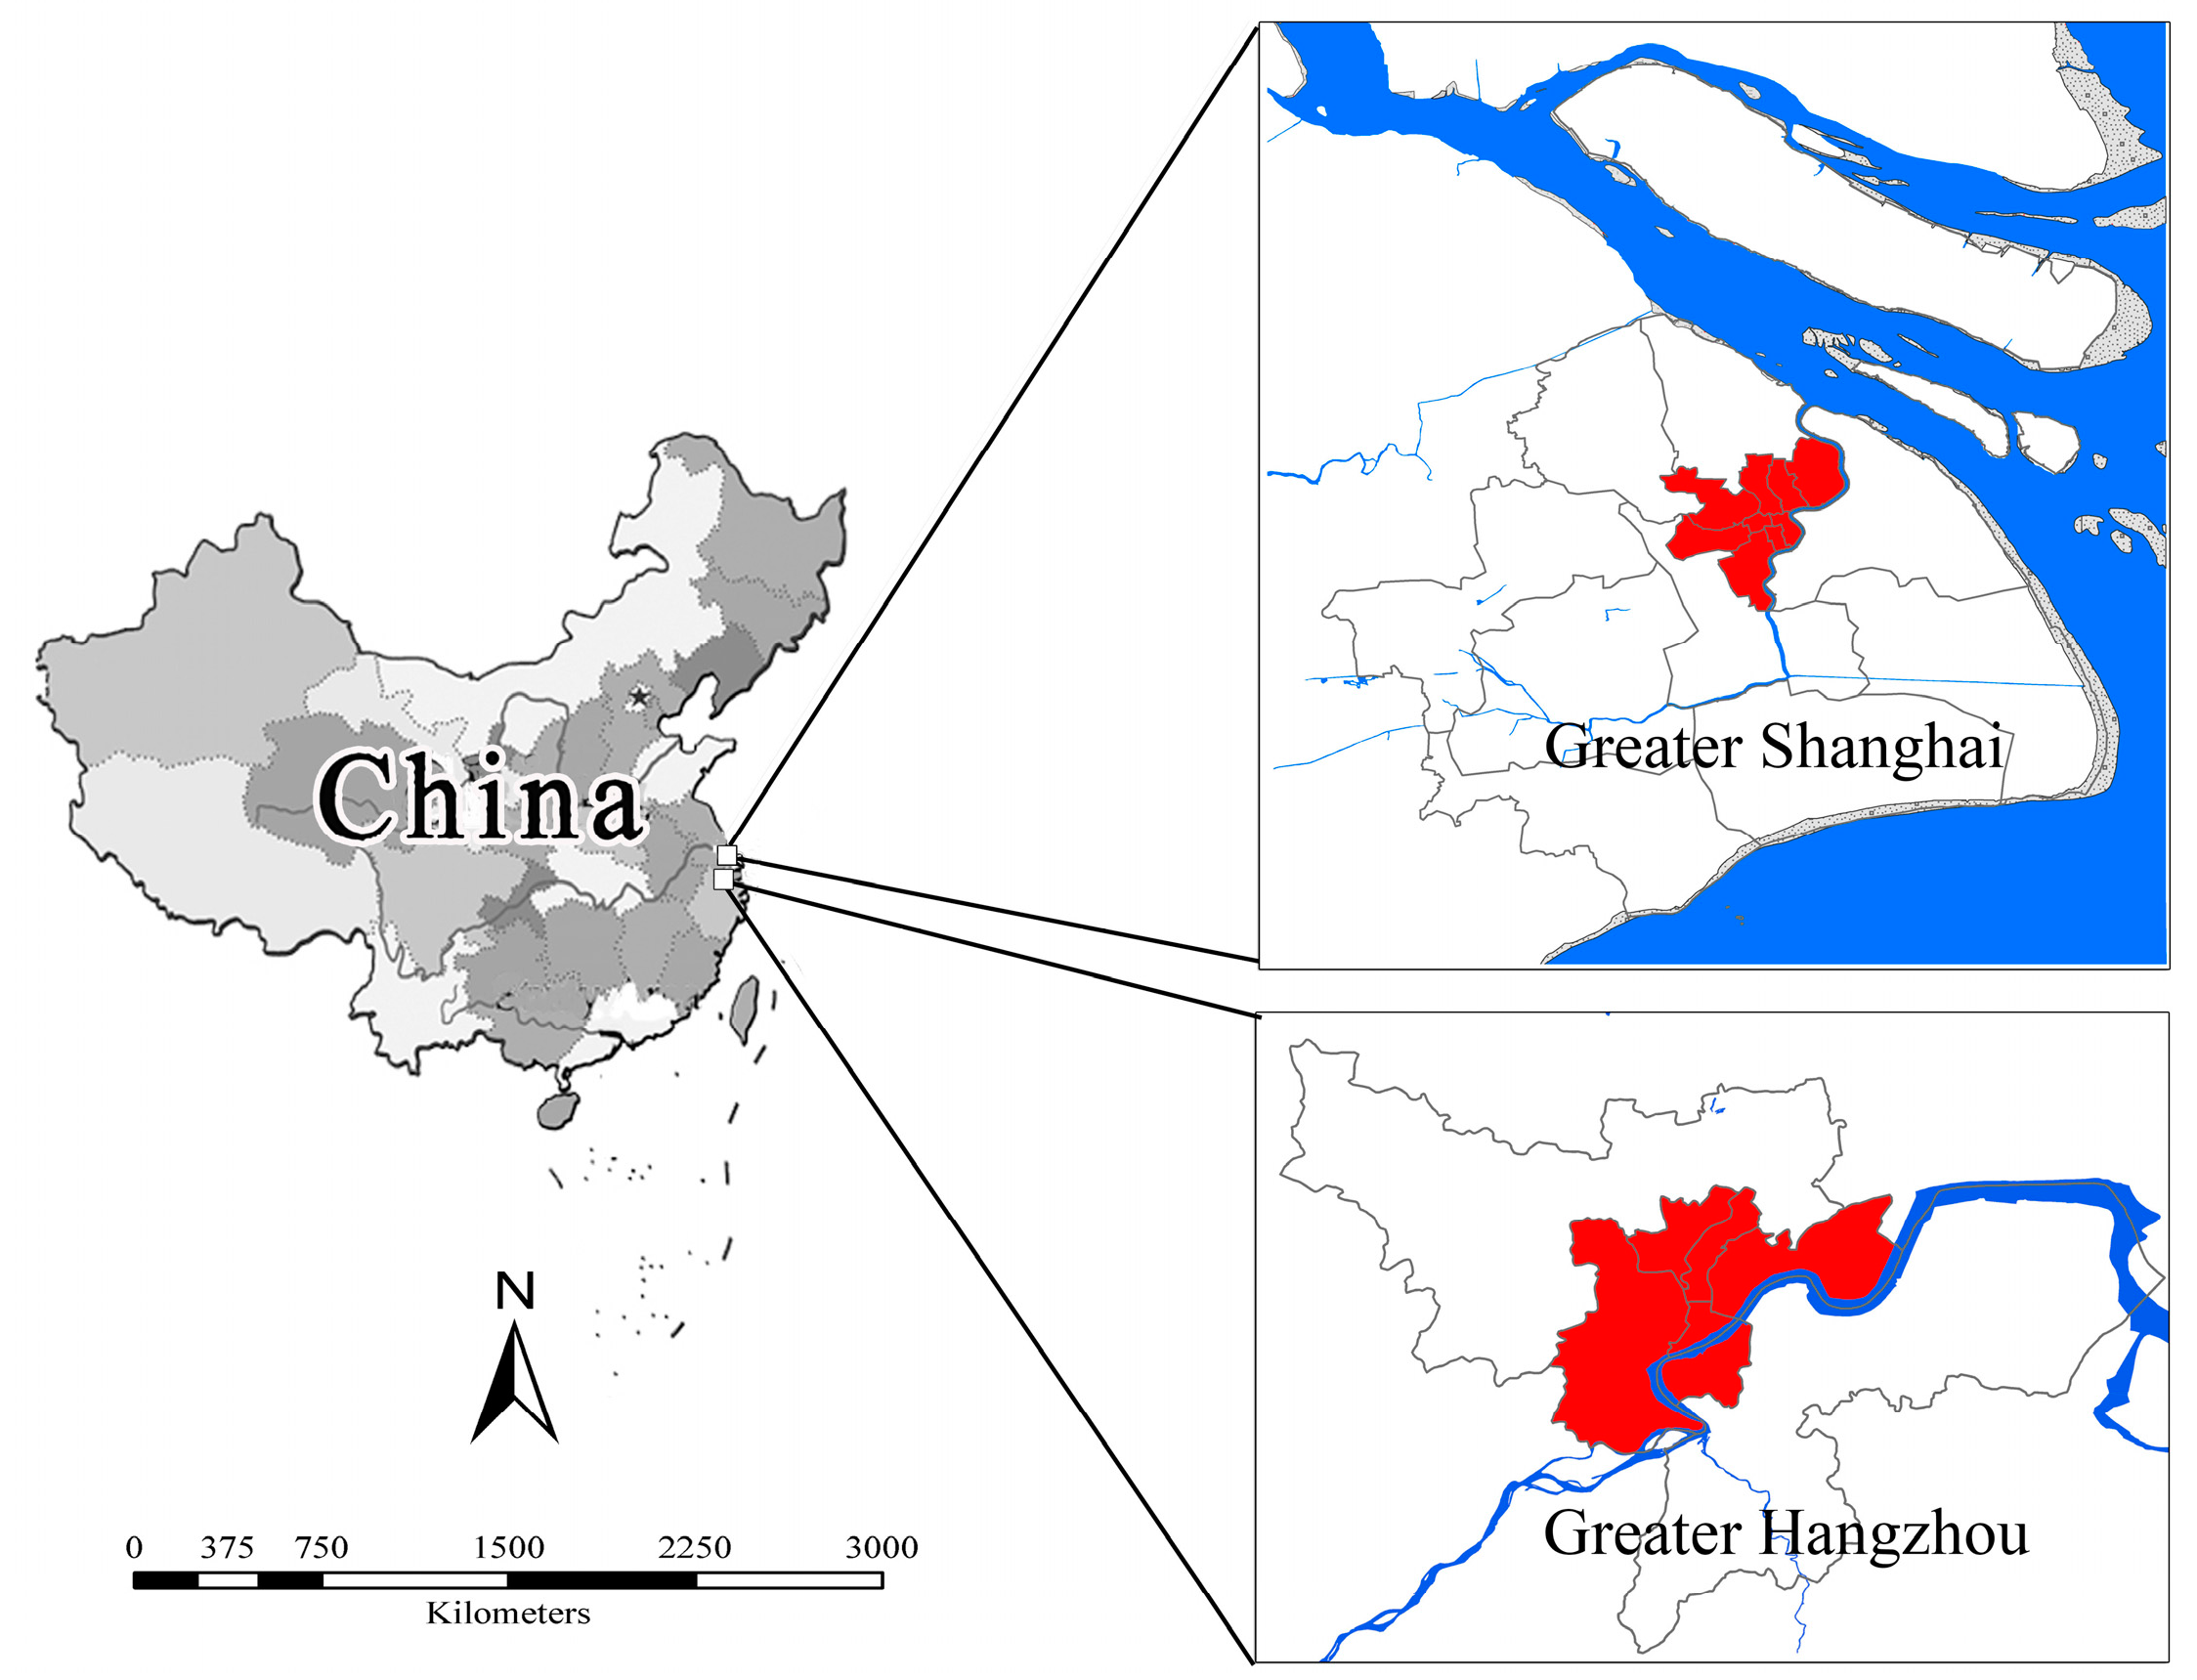 Analyzing Three-Decadal Patterns of Land Use/Land Cover Change and Regional Ecosystem Services at the Landscape Level: Case Study of Two Coastal Metropolitan Regions, Eastern China